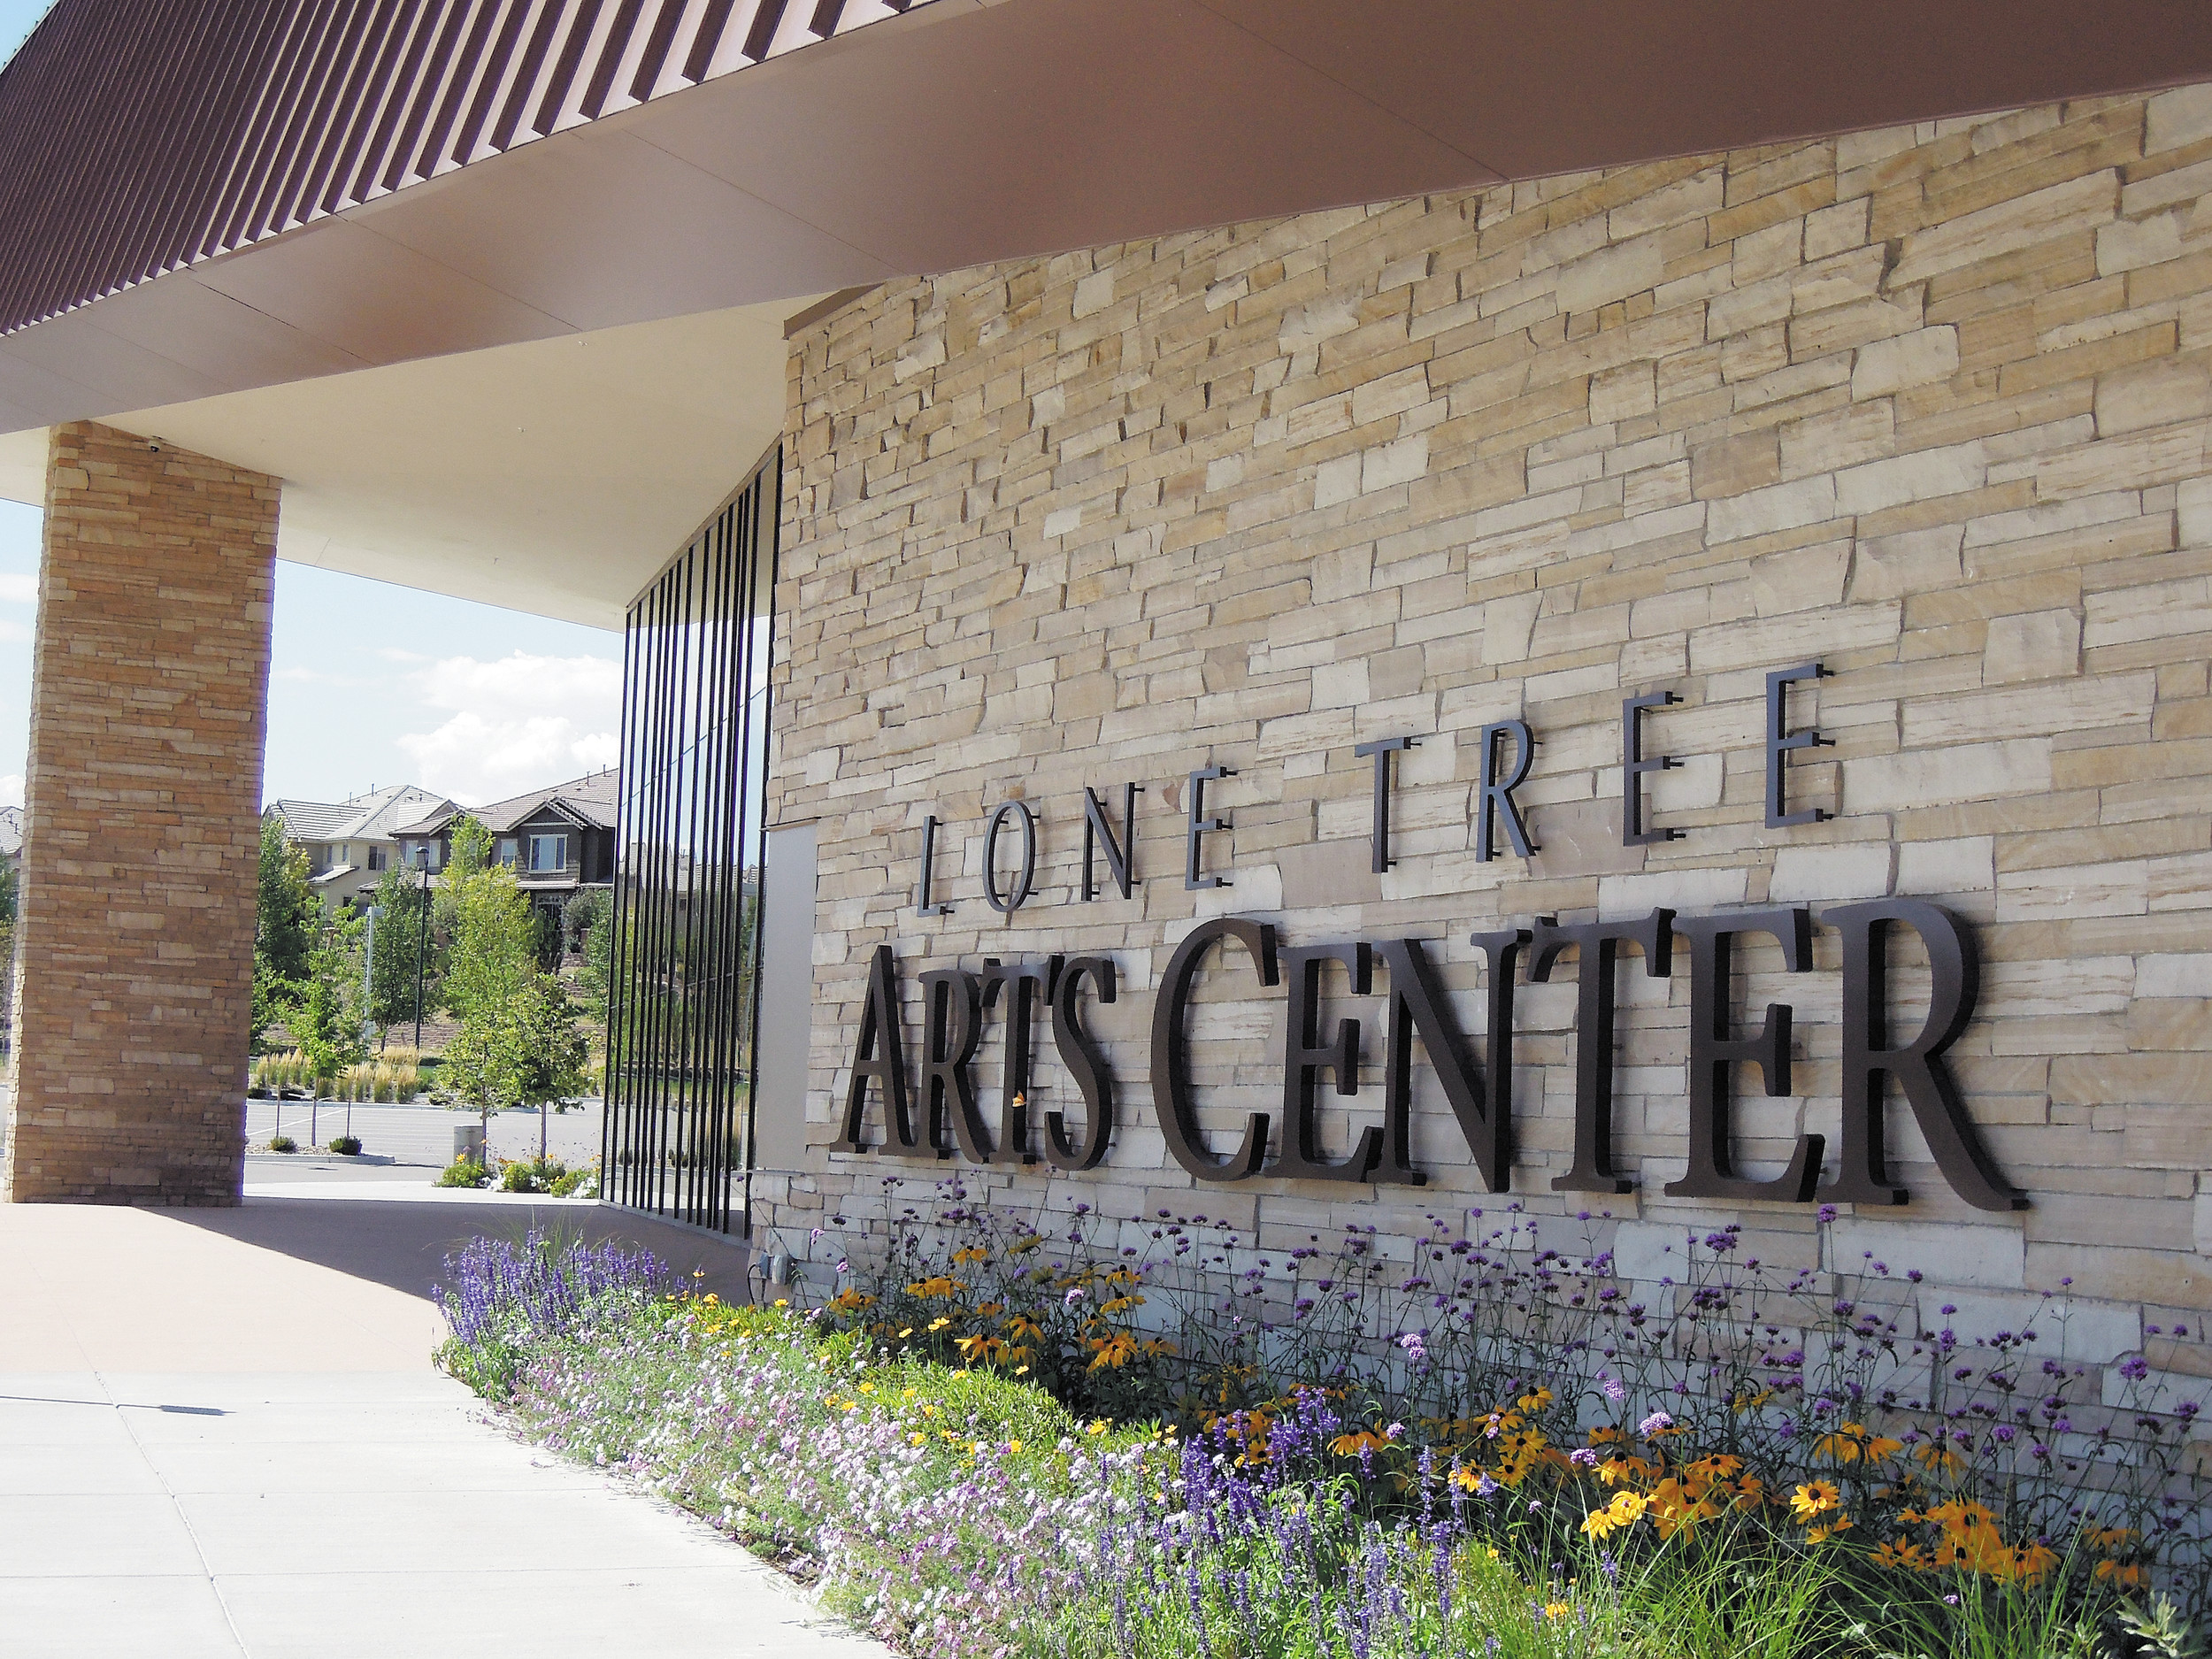 The Lone Tree Arts Center